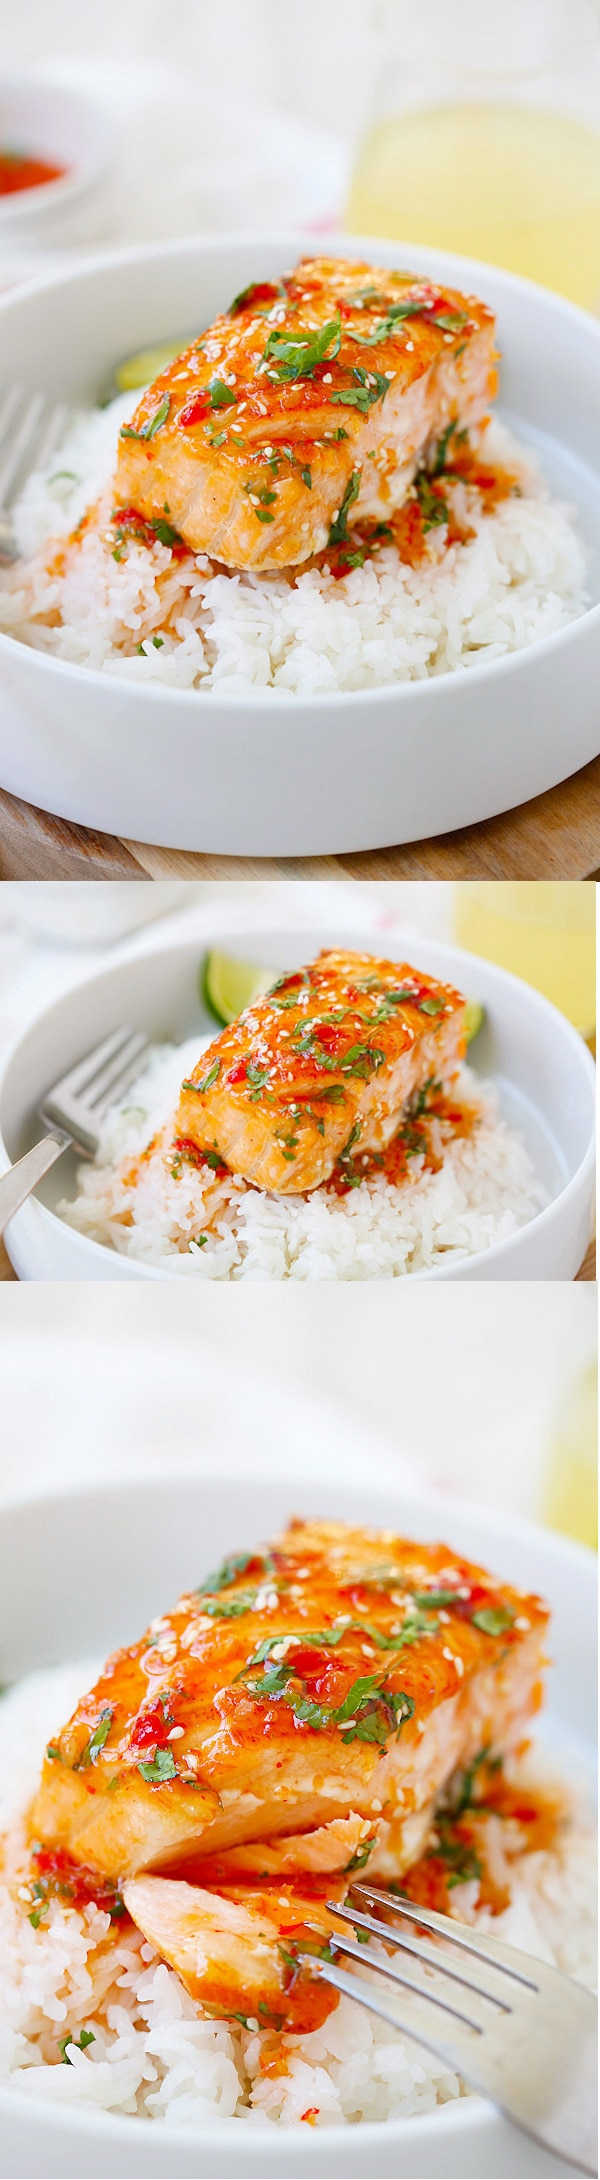 Sweet Chili Salmon - quick and easy salmon with Thai sweet chili sauce. The recipe takes only 15 mins on skillet or you can bake it.